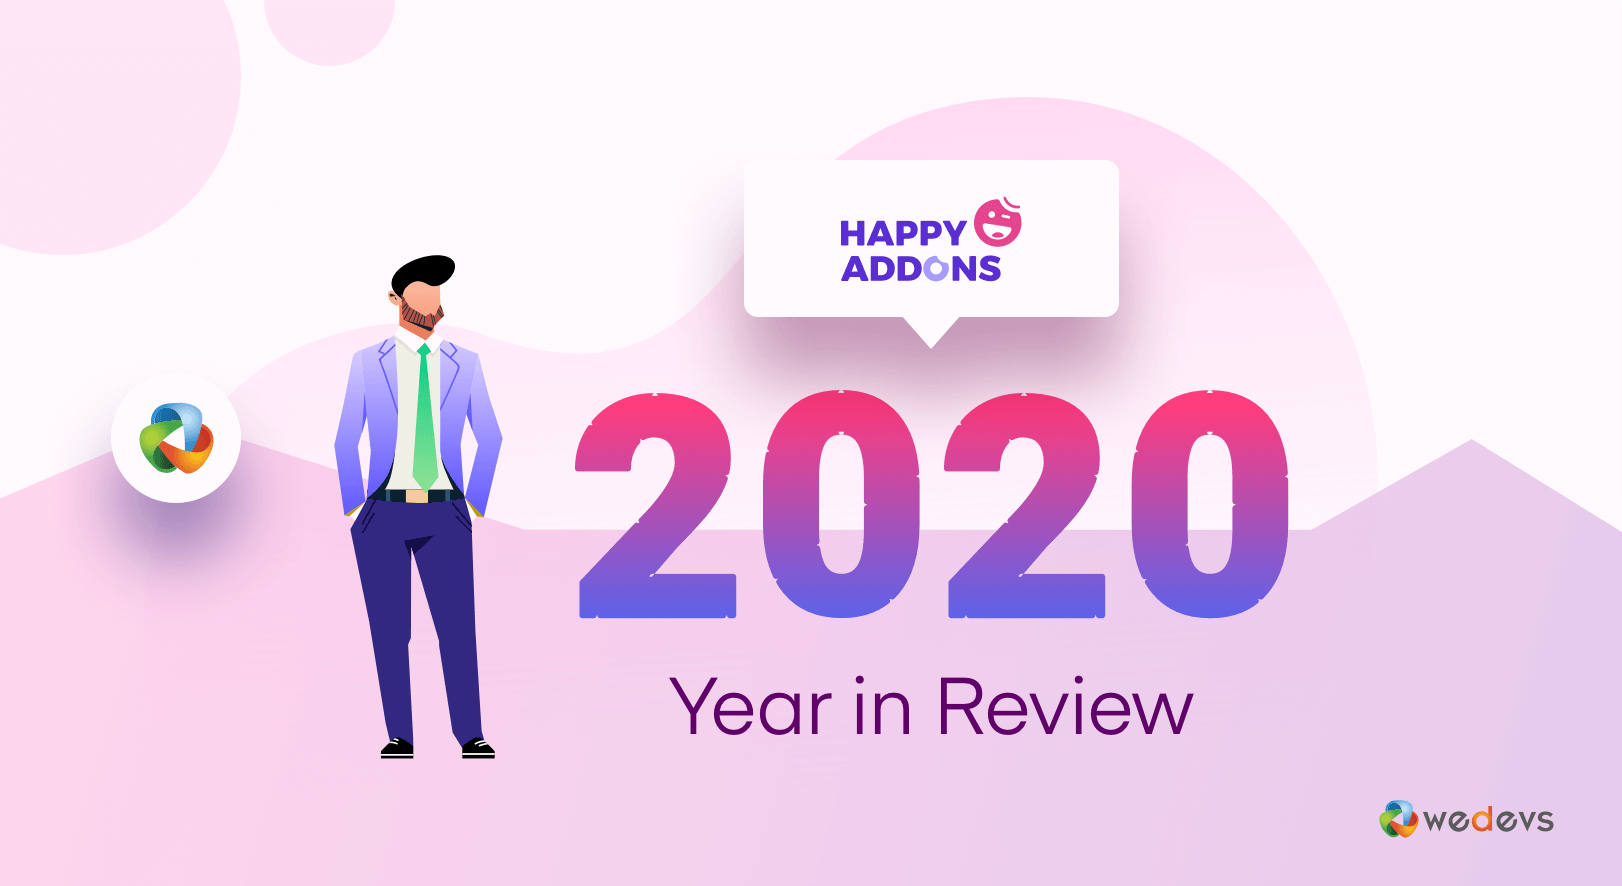 HappyAddons Year In Review 2020: How We Become A Family of 100,000 Happy Users!